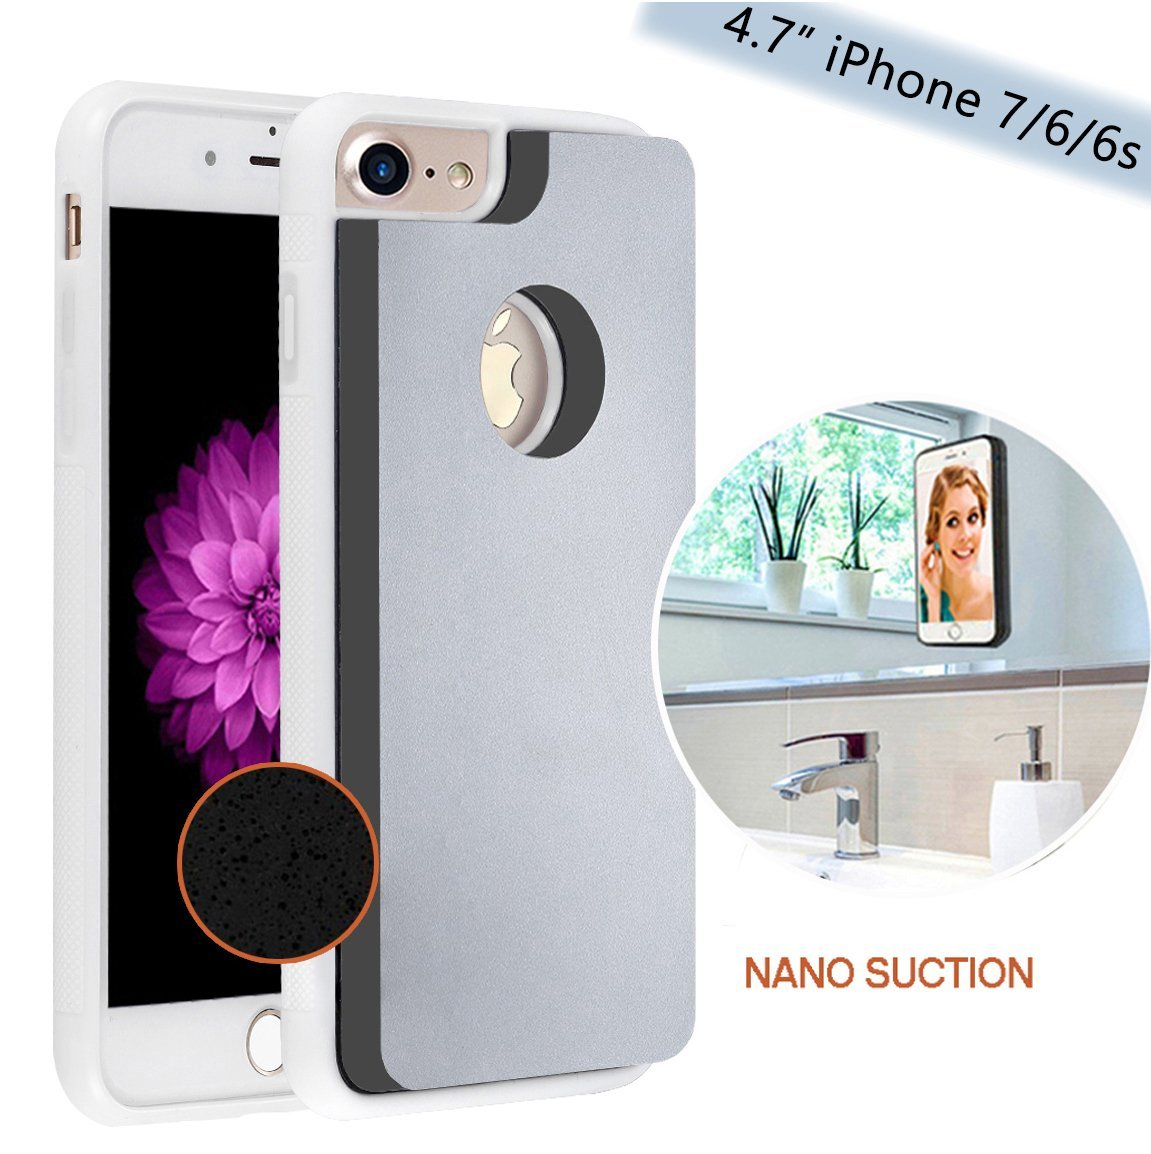 iPhone 6 / iPhone 7 Magical Nano Anti Gravity Phone Case - Can Stick to Glass, Whiteboards, Tile and Smooth Flat Surfaces